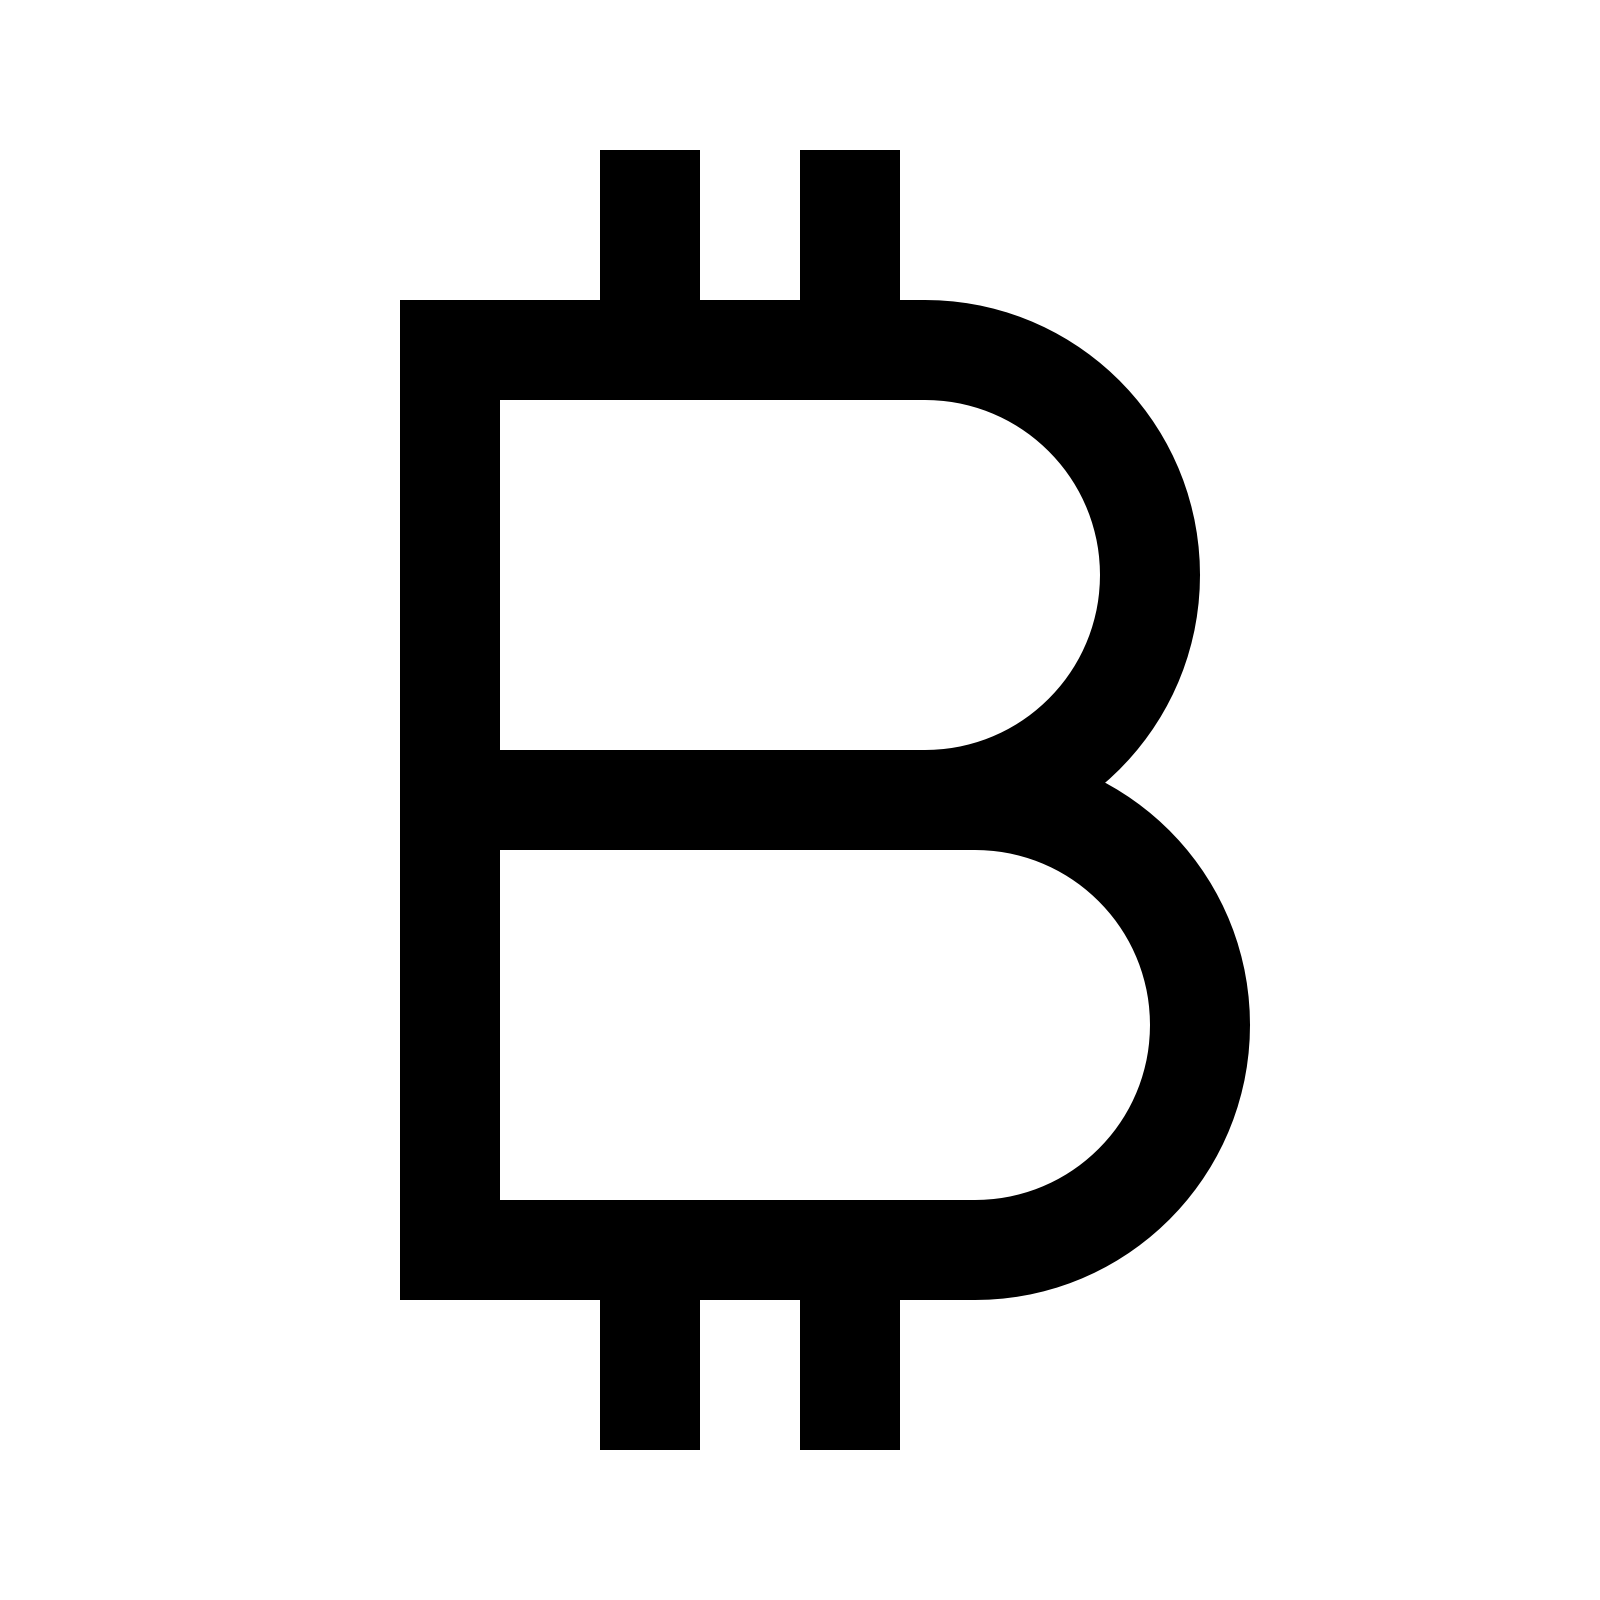 Icons Symbol Bitcoin Cryptocurrency Wallet Computer PNG Image